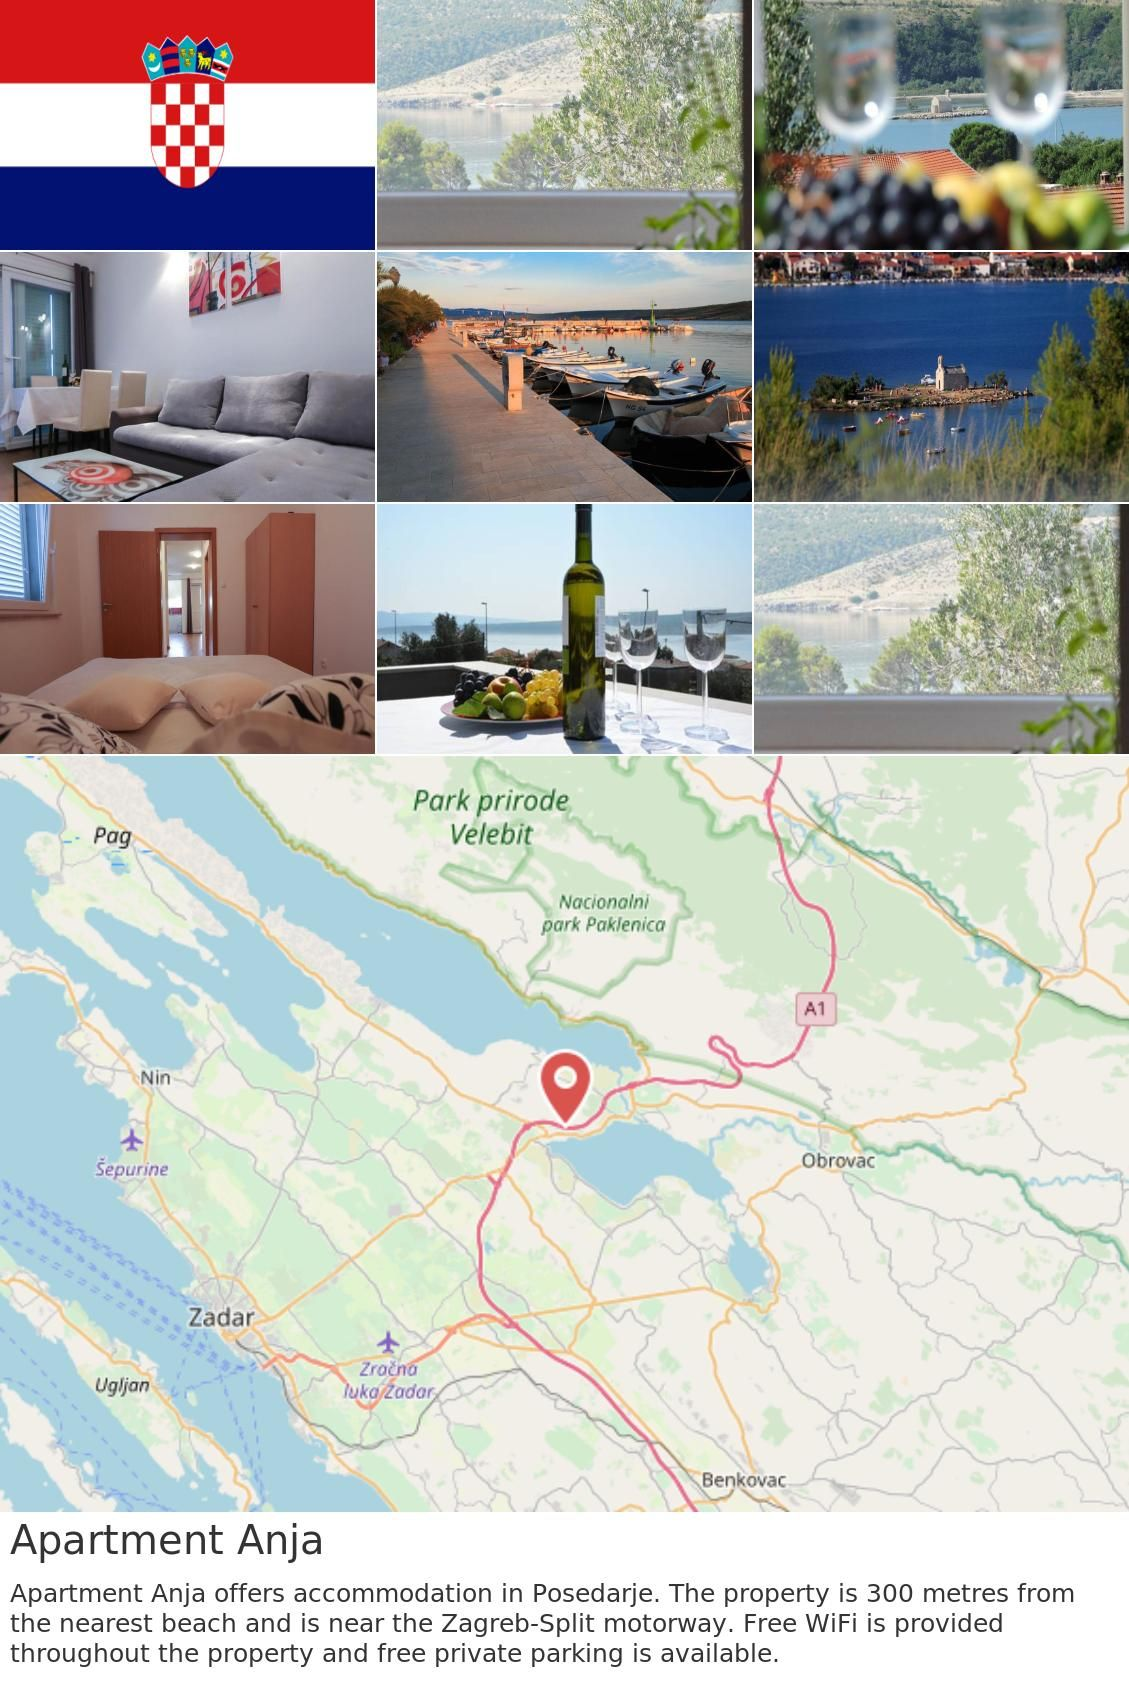 Europe Croatia Posedarje Apartment Anja Apartment Anja Offers Accommodation In Posedarje The Property Is 300 Metres From The Nearest Beach And Is Near The